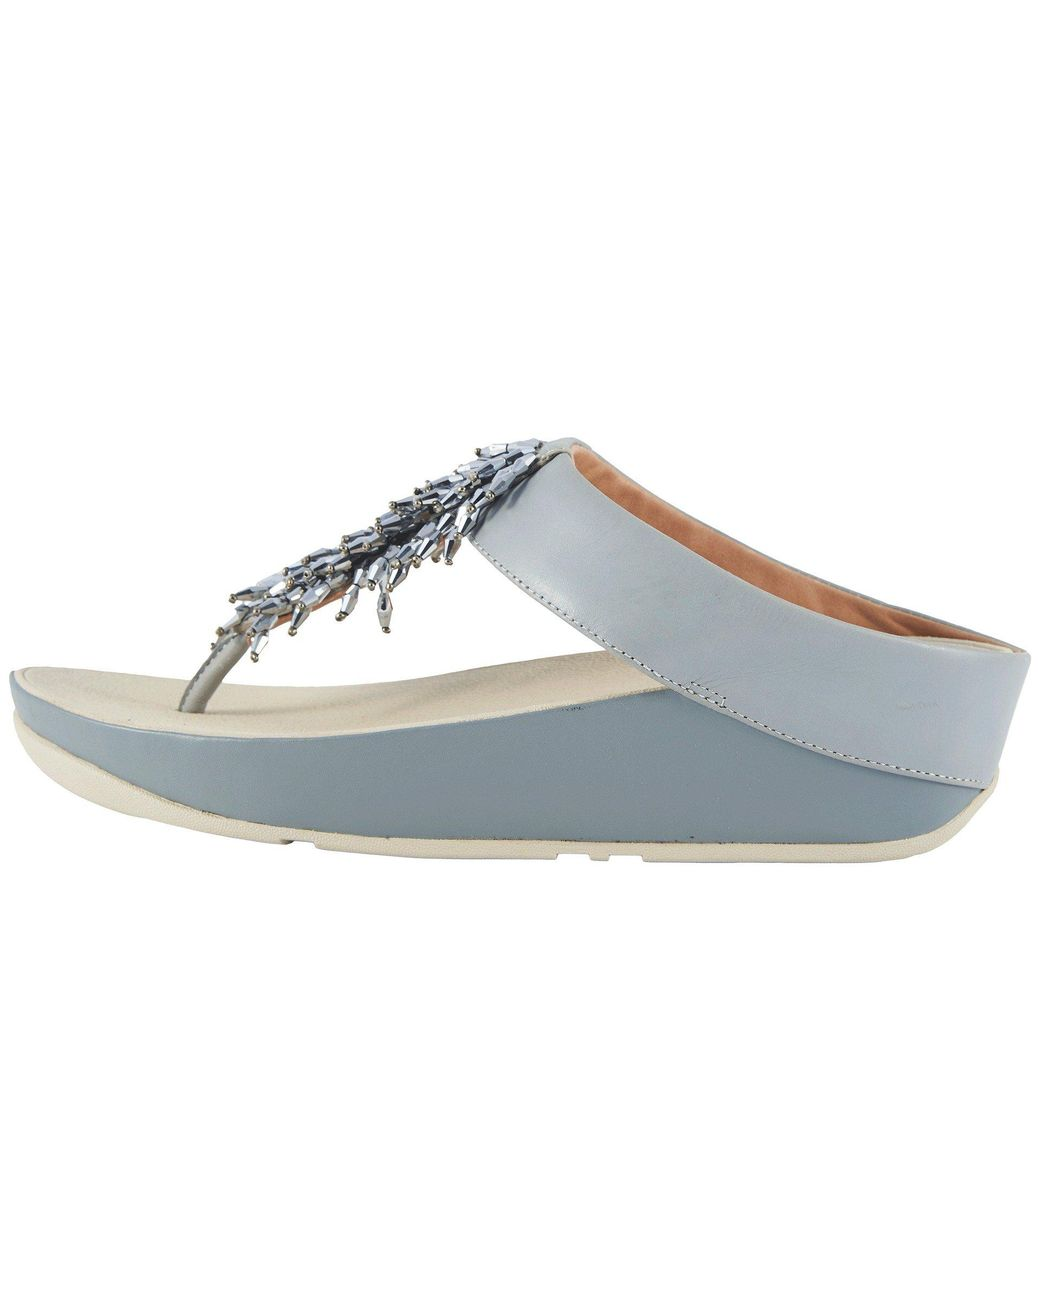 35cb9d0e537f Lyst - Fitflop Rumba Toe Thong Sandals in Blue - Save 28%